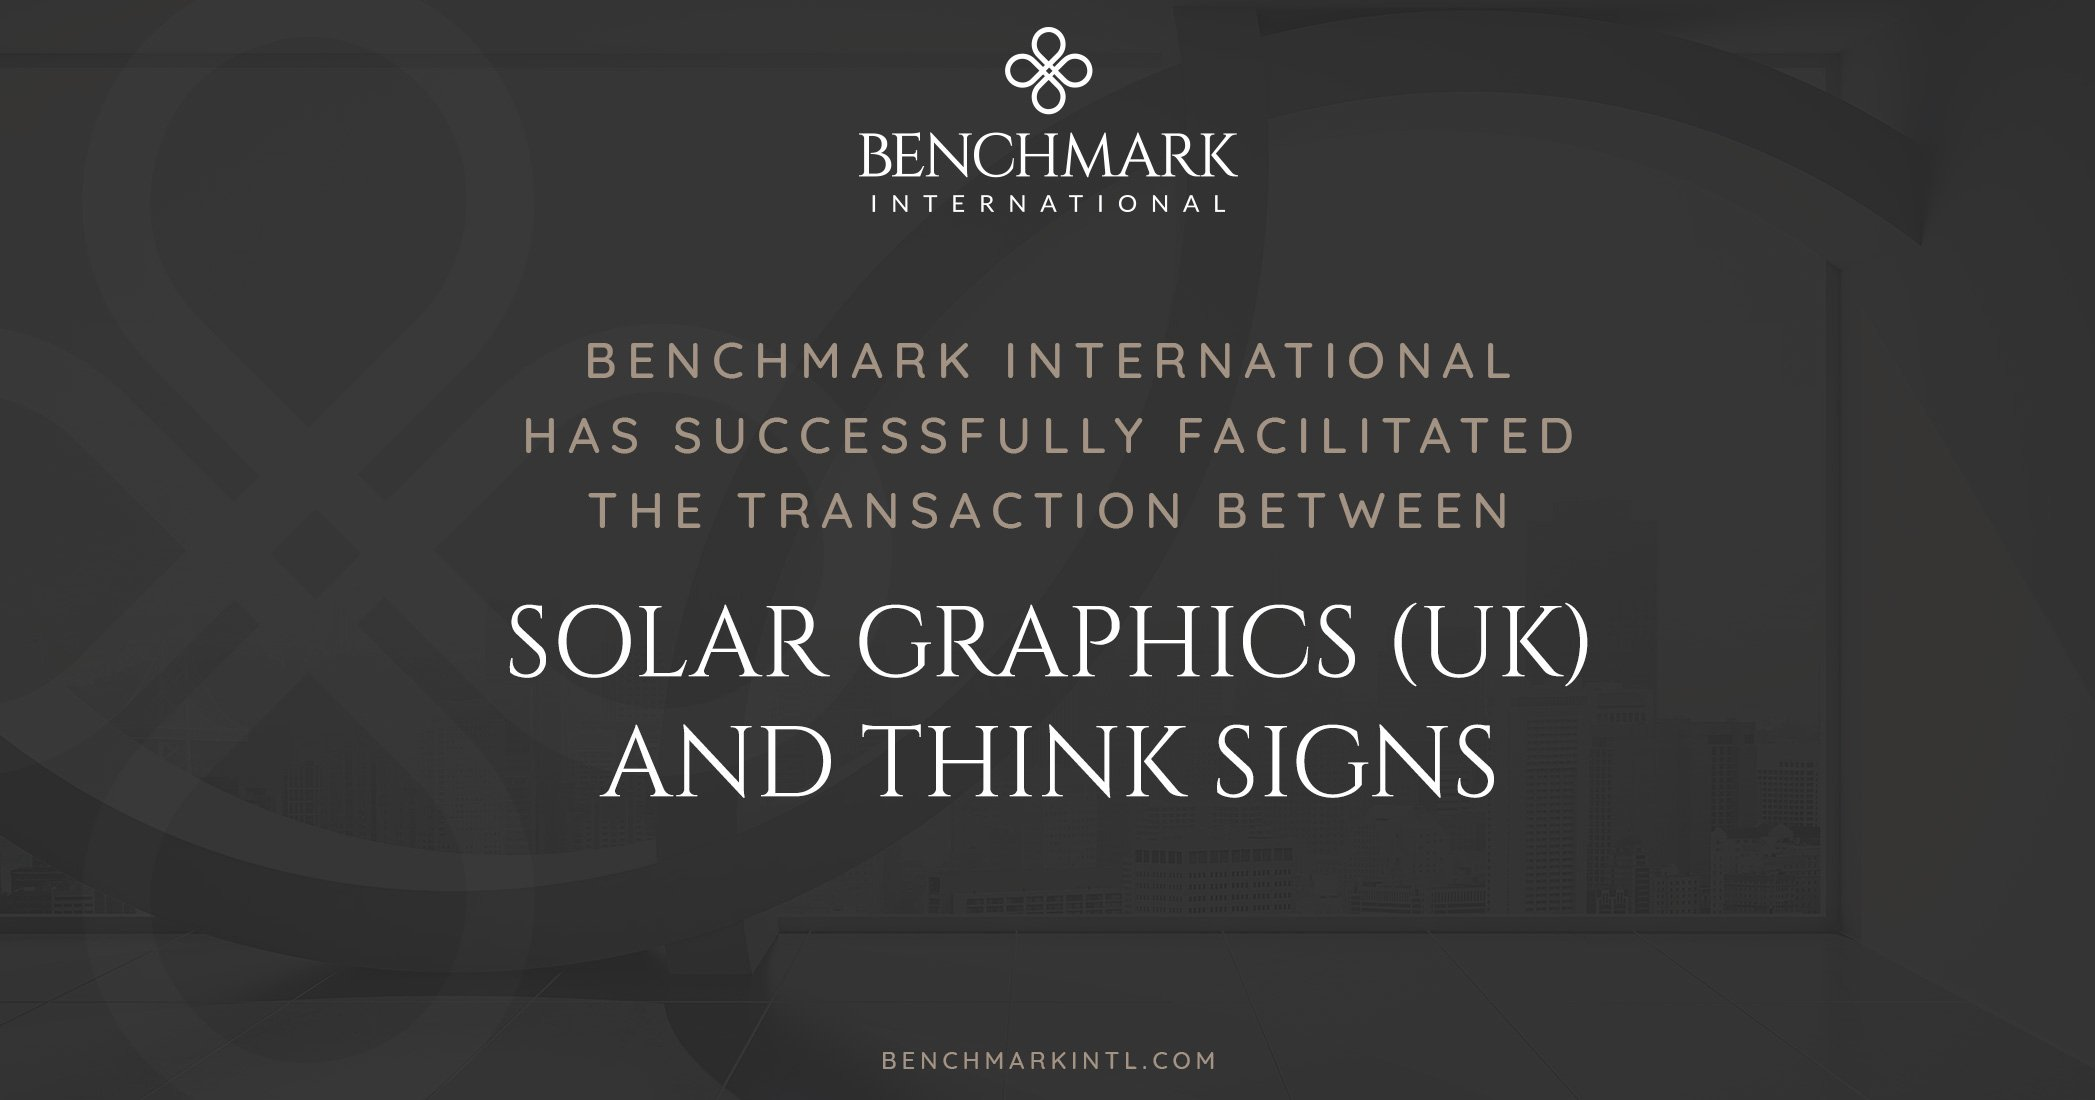 Benchmark International Successfully Facilitated the Transaction Between Solar Graphics (UK) and Think Signs